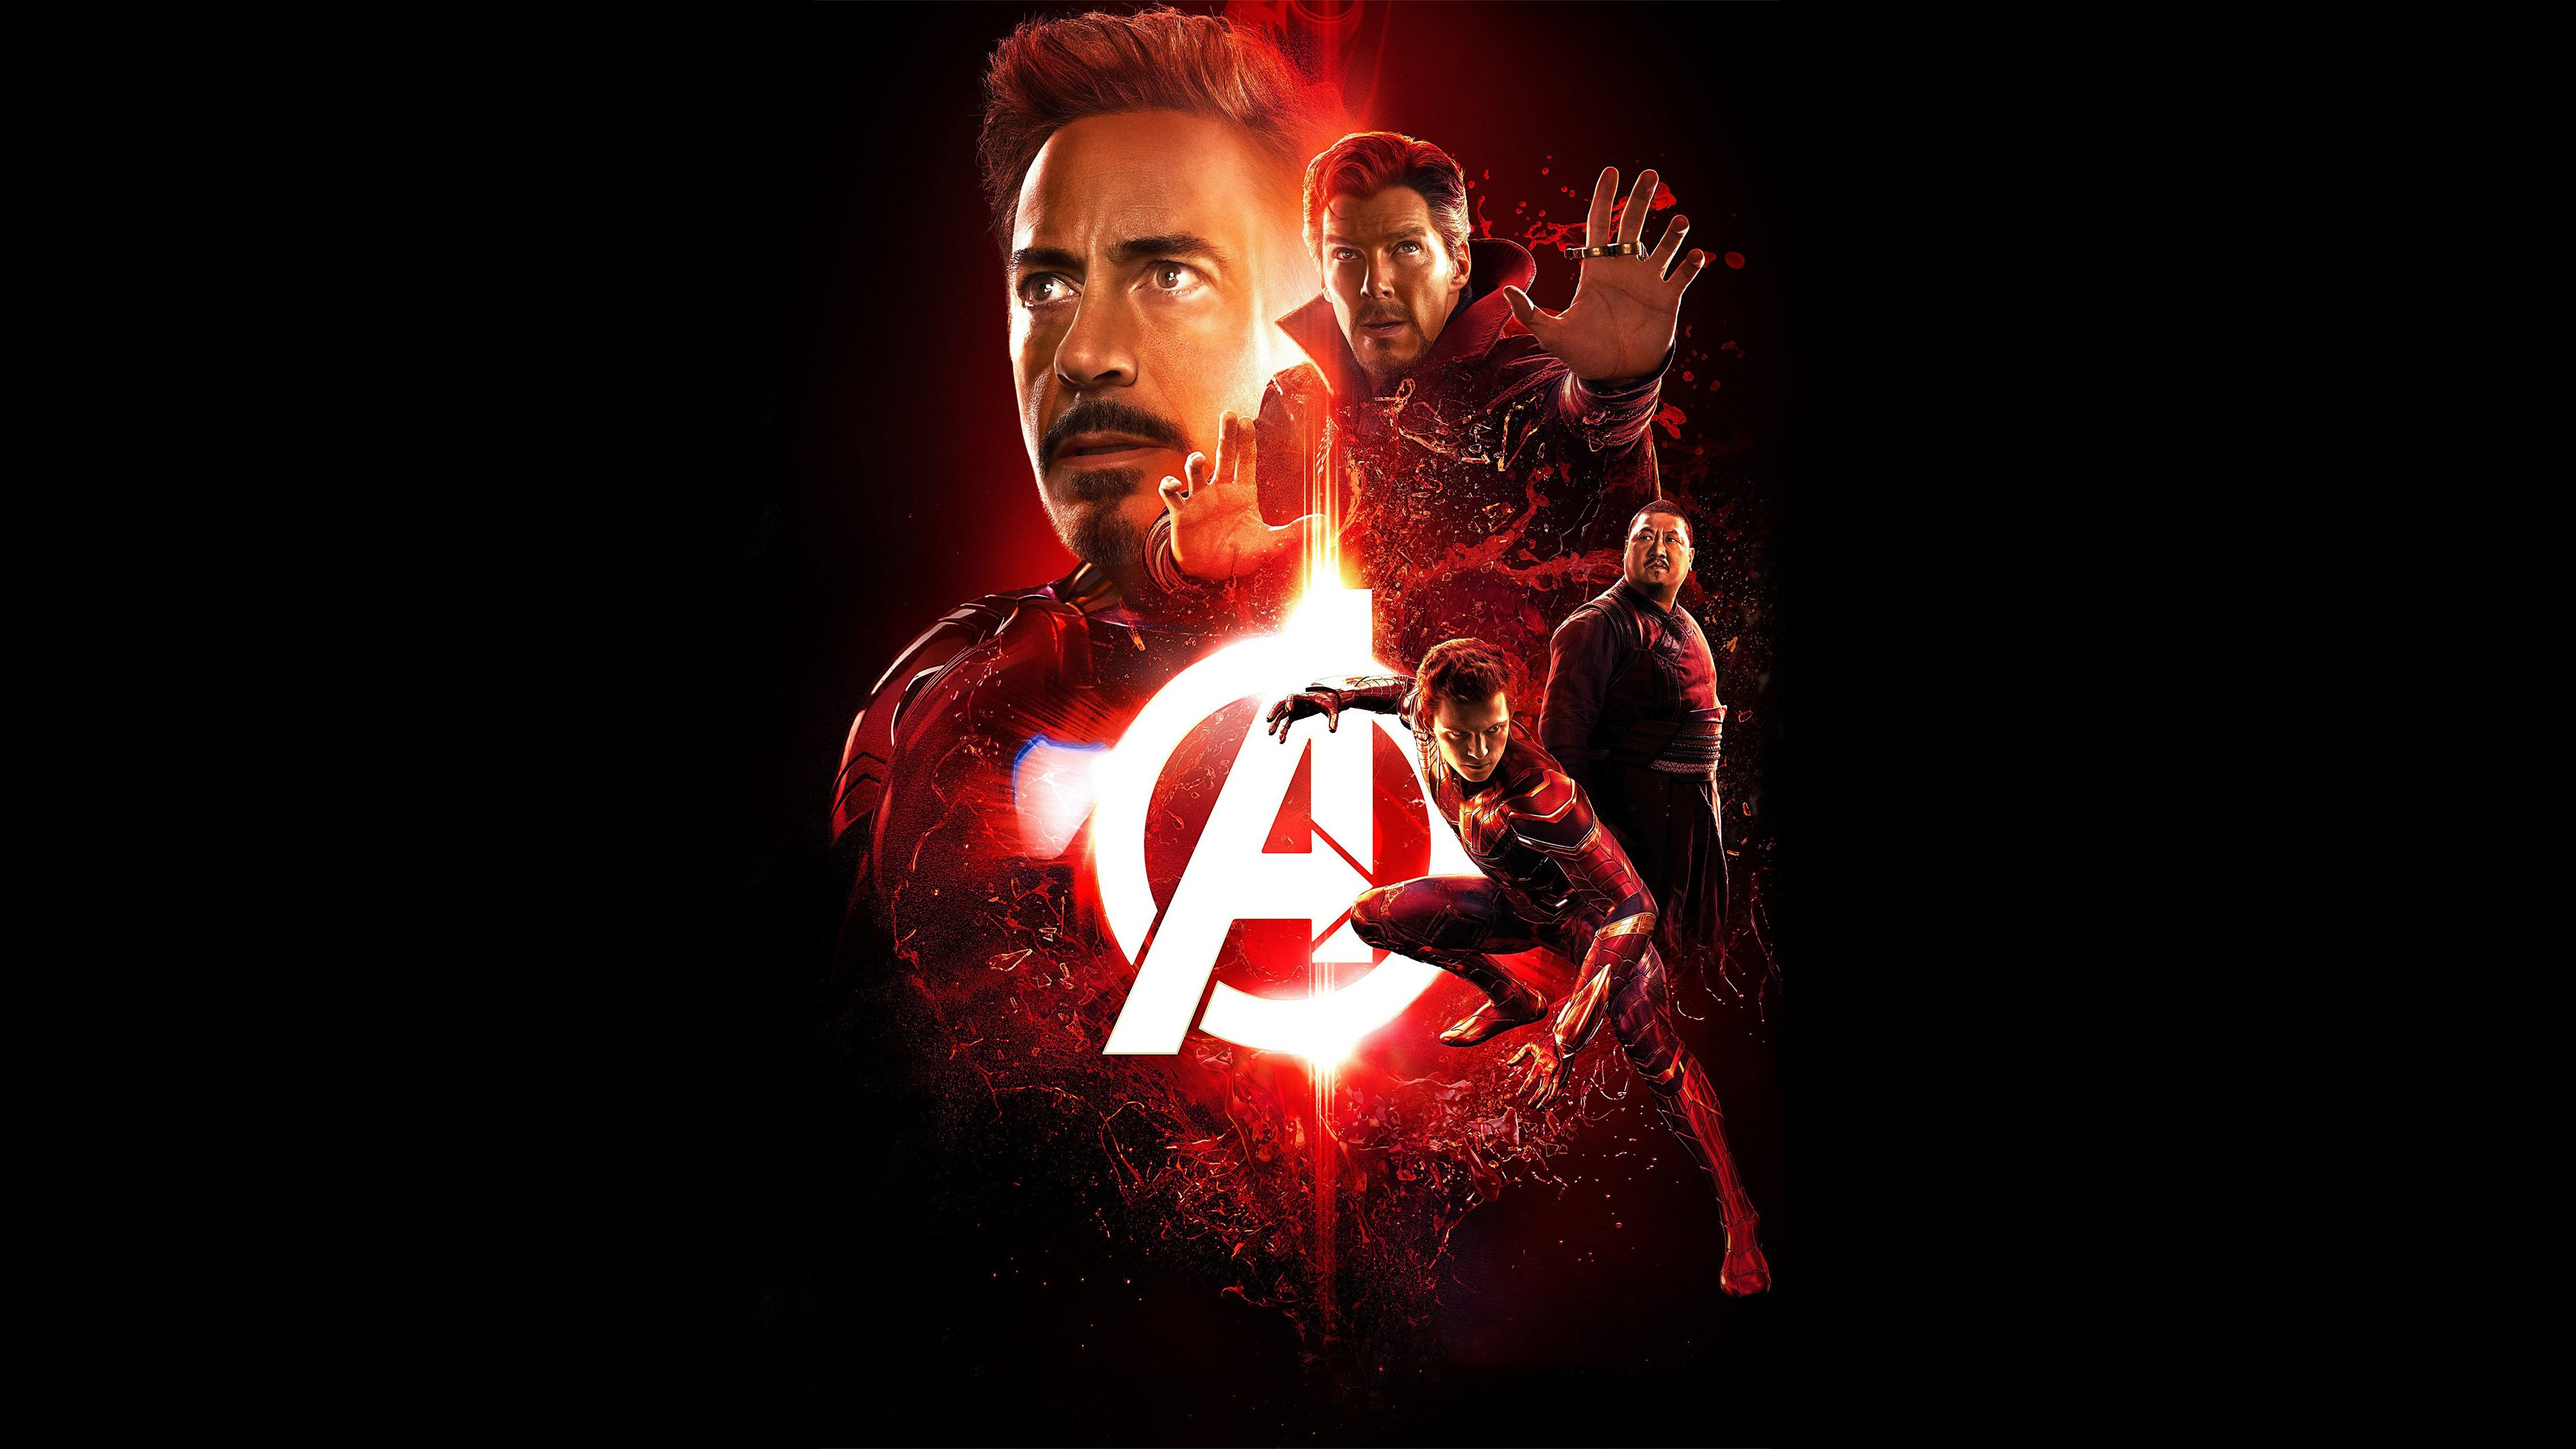 Avengers Infinity War Wallpapers High Quality | Download Free